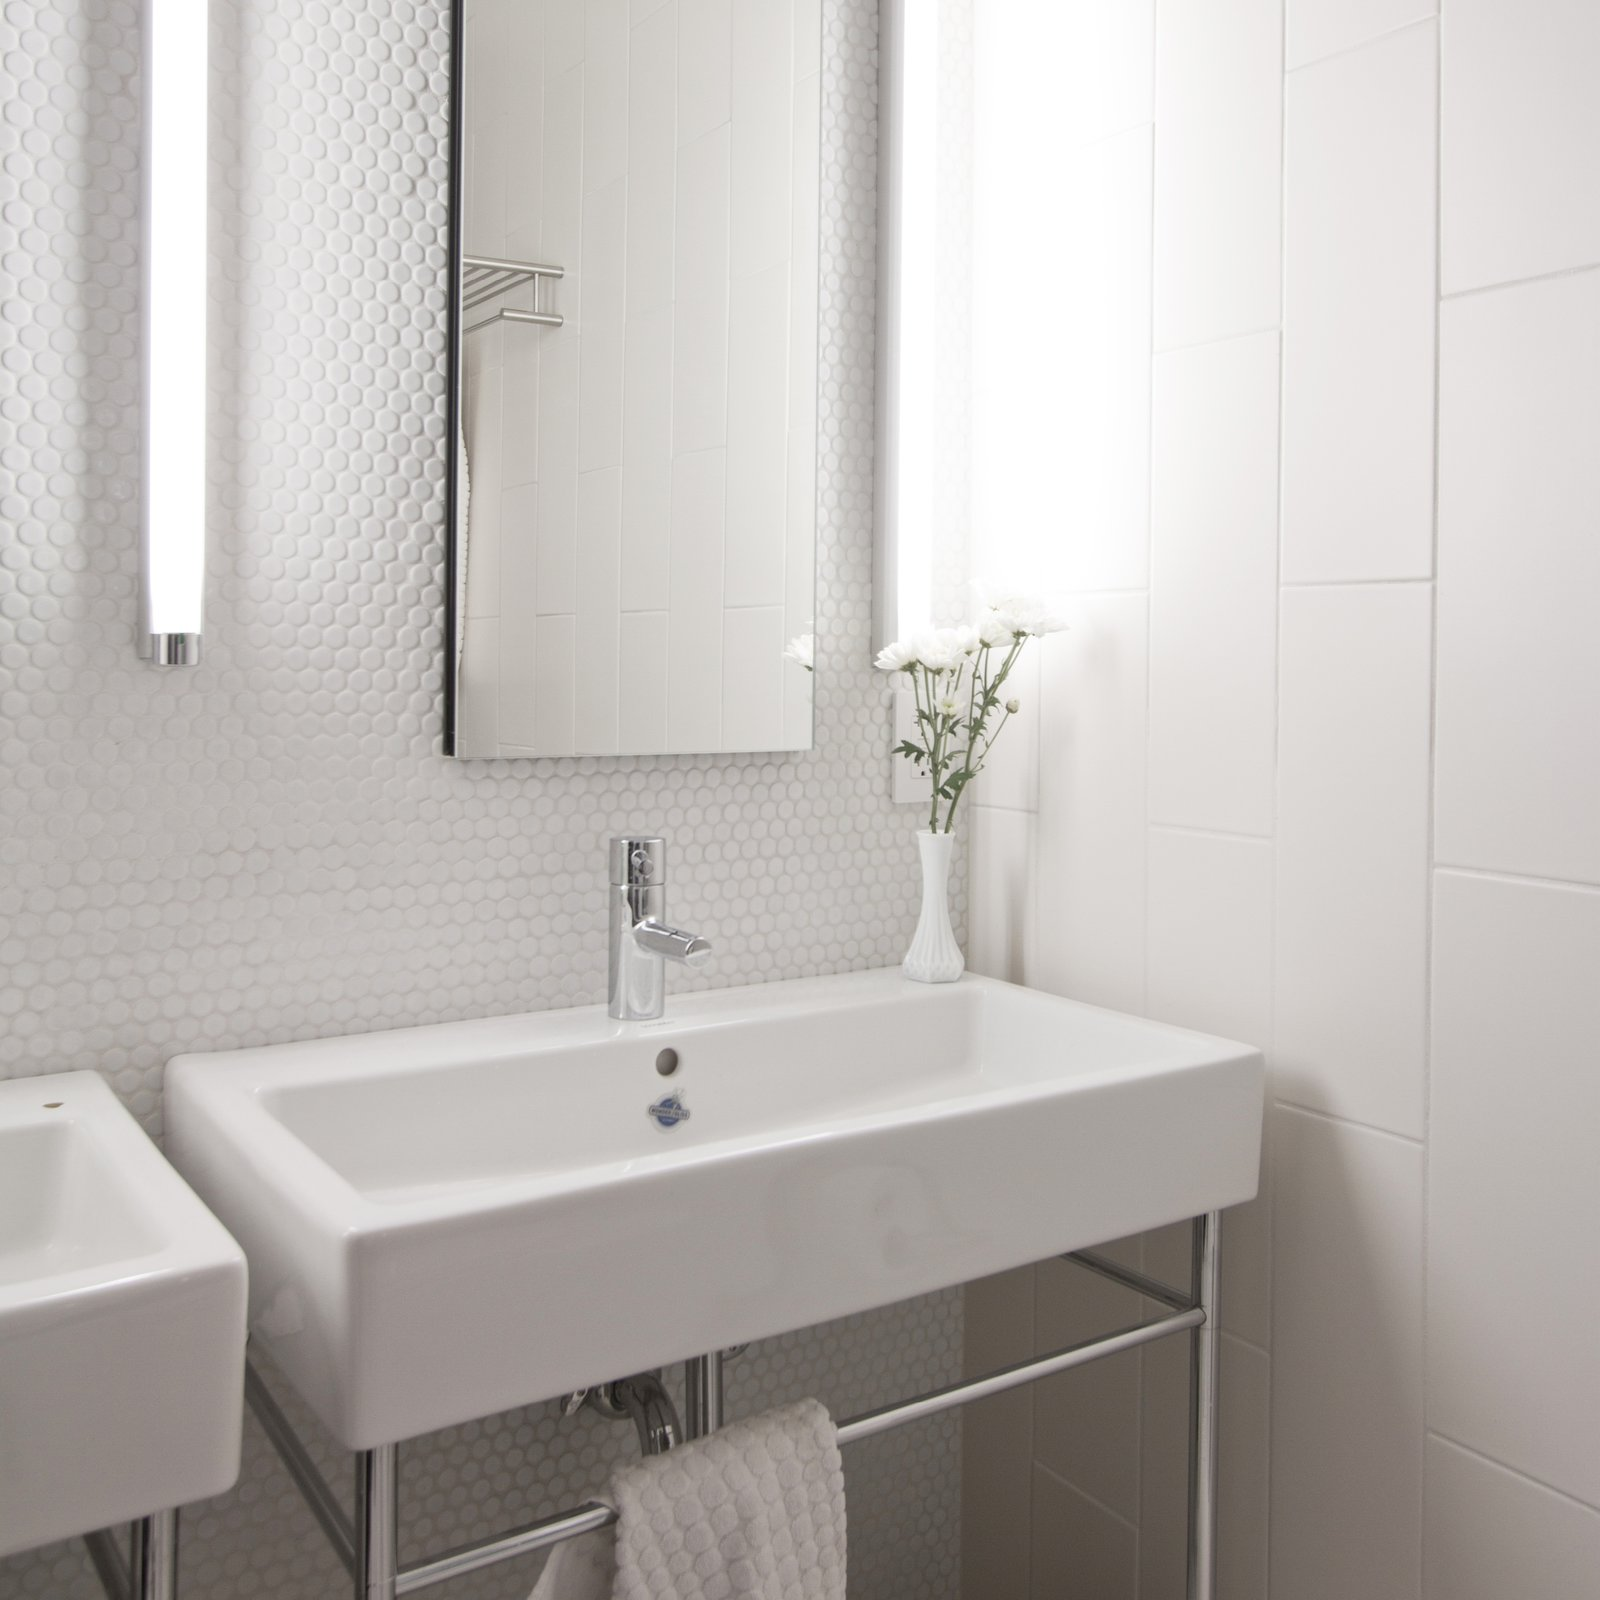 The main bathroom experiments with varying textured tiles, and is equipped with Duravit, American Stand, Toto and Kohler fixtures.  Revitalization by Caroline Wallis